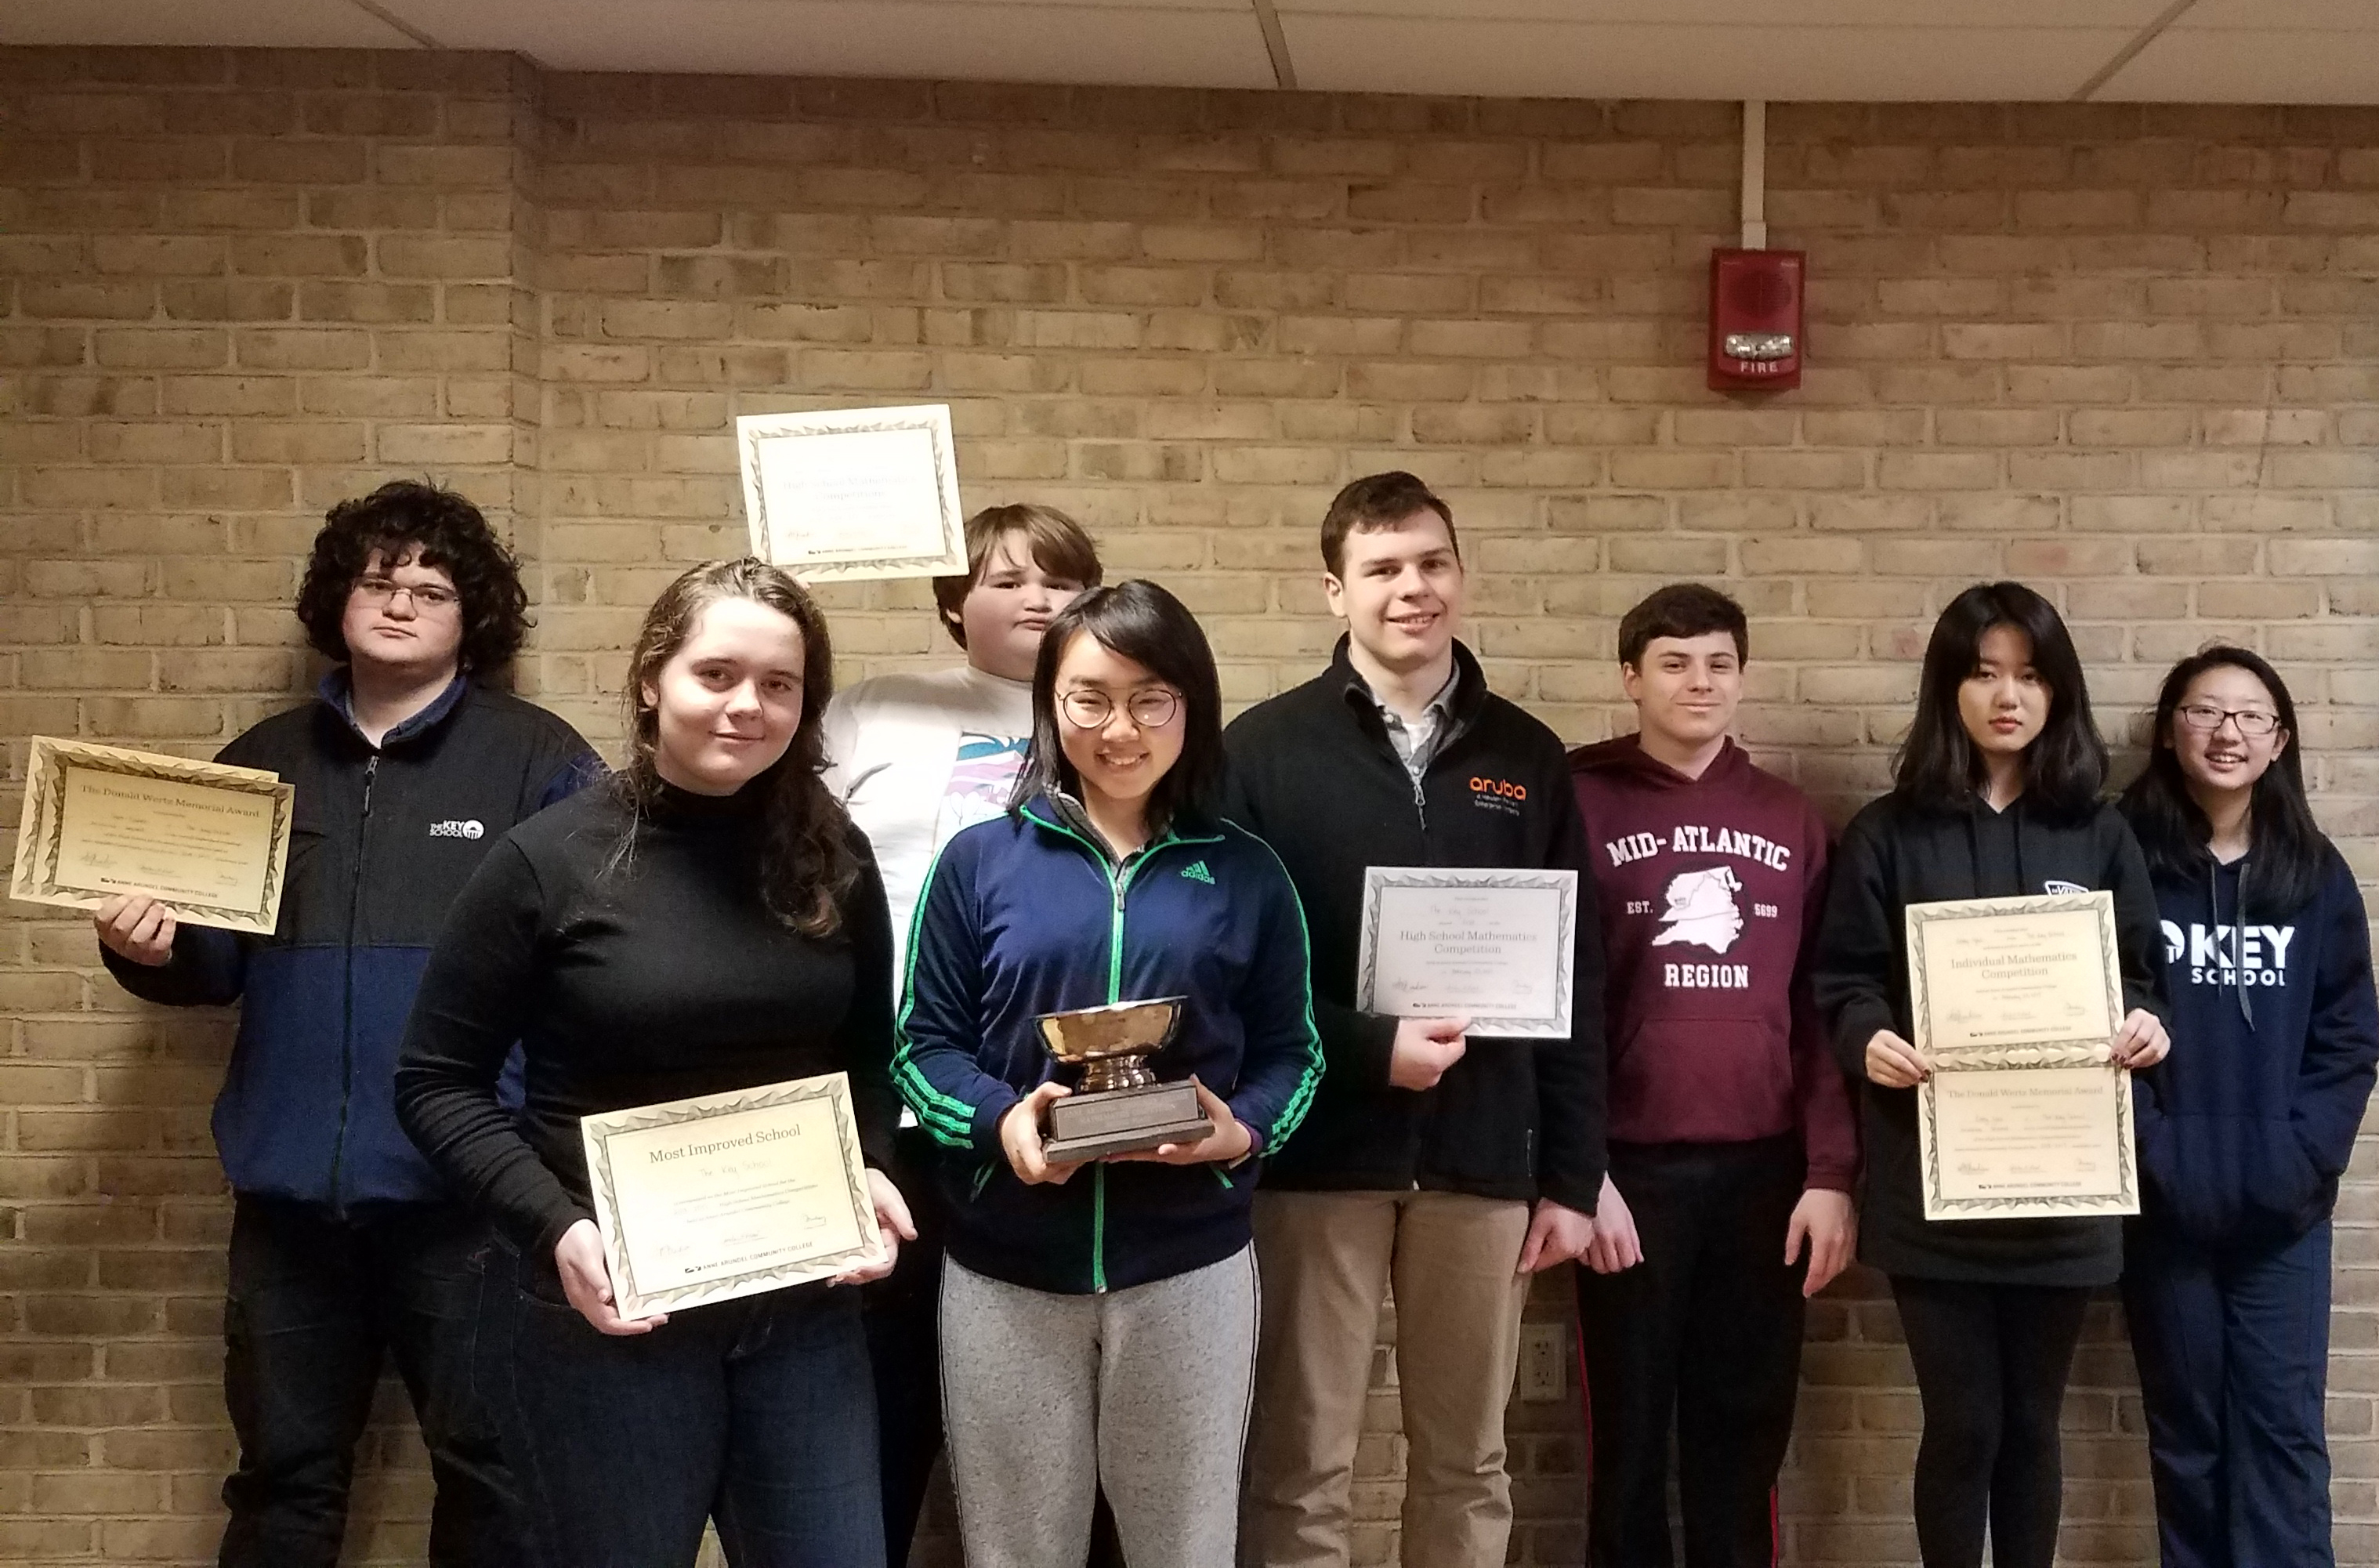 Upper School Math Team Wins Accolades